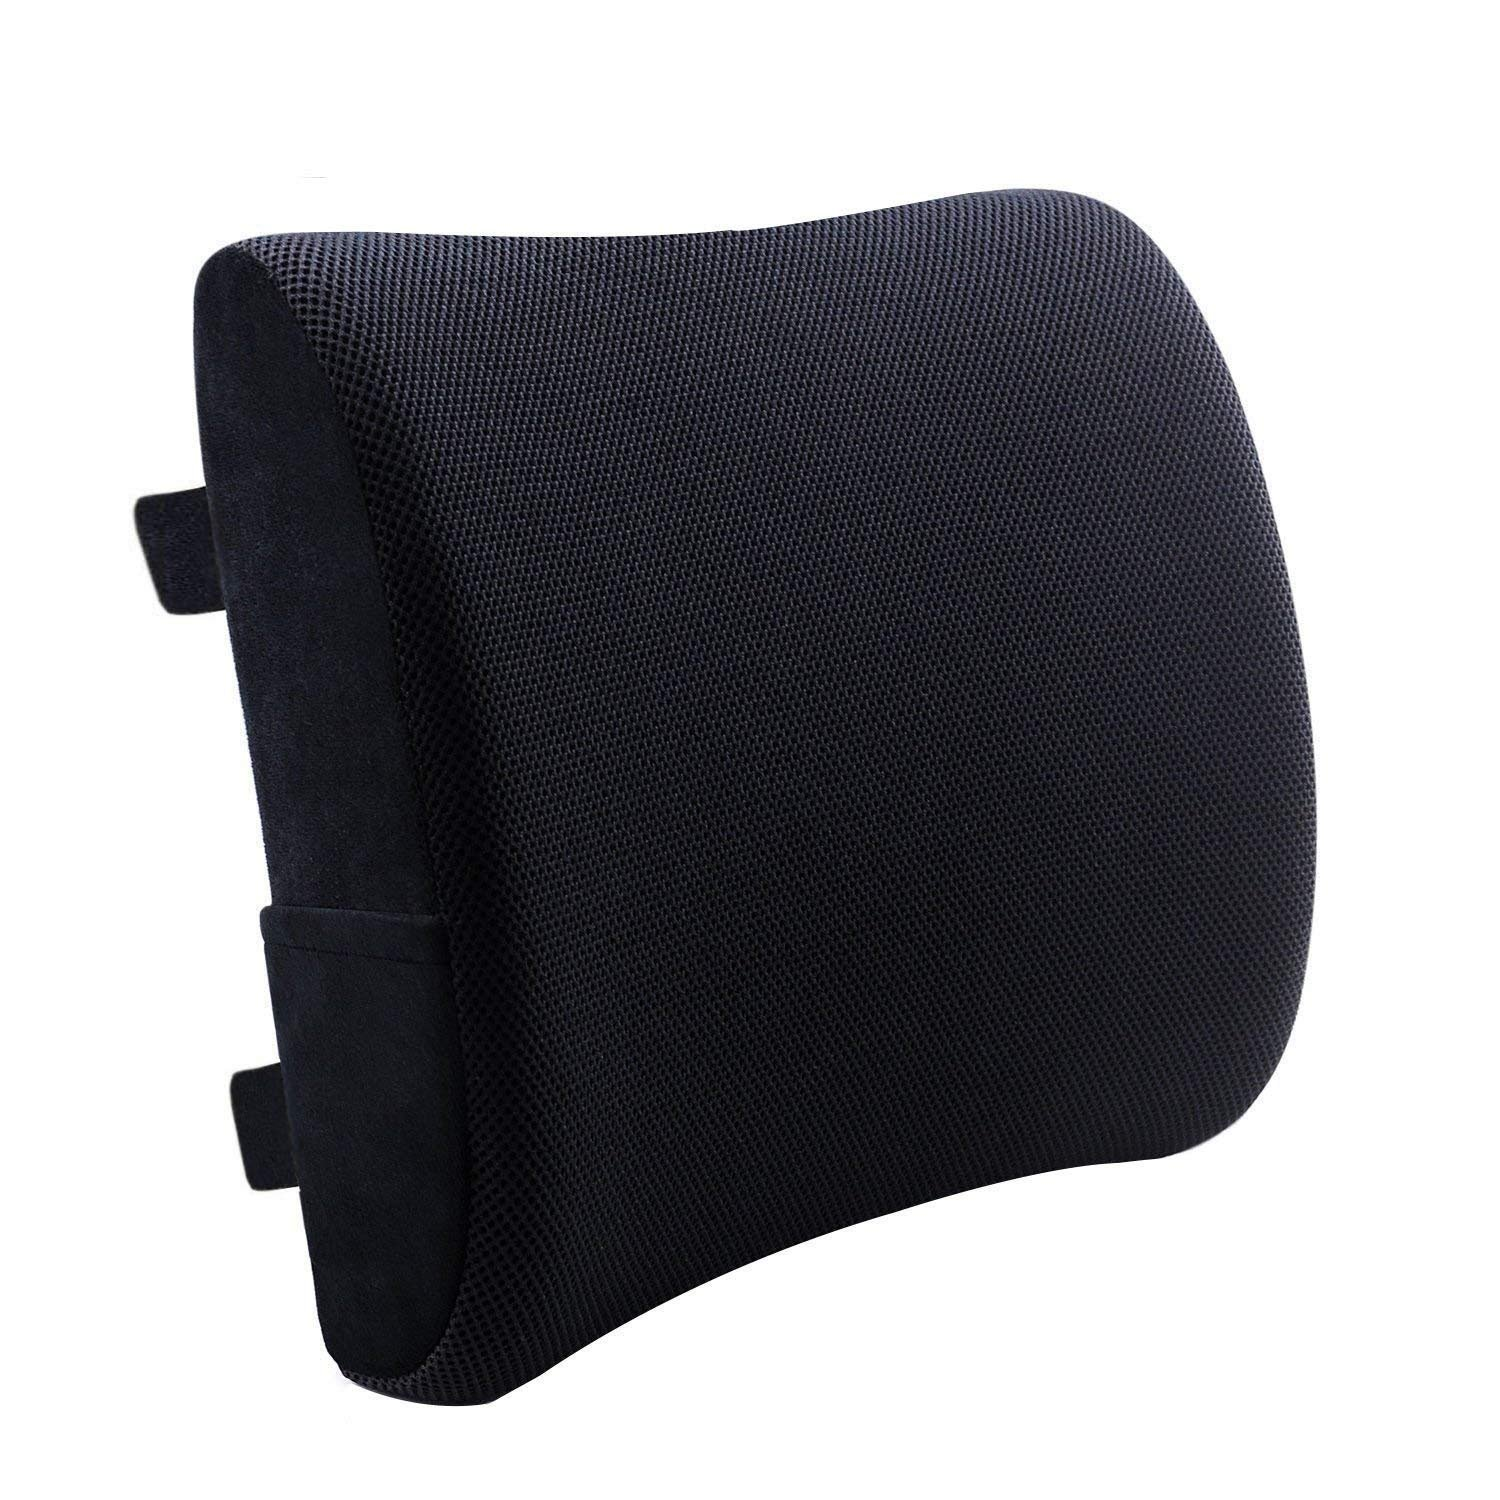 Dreamer Car Chair Cushion Back Support with Balanced Soft Memory Foam for Lower Back Pain Relief, Backrest with Non-slip Rubber Bottom and 2 Adjustable Straps for Computer/Office Chair, Black